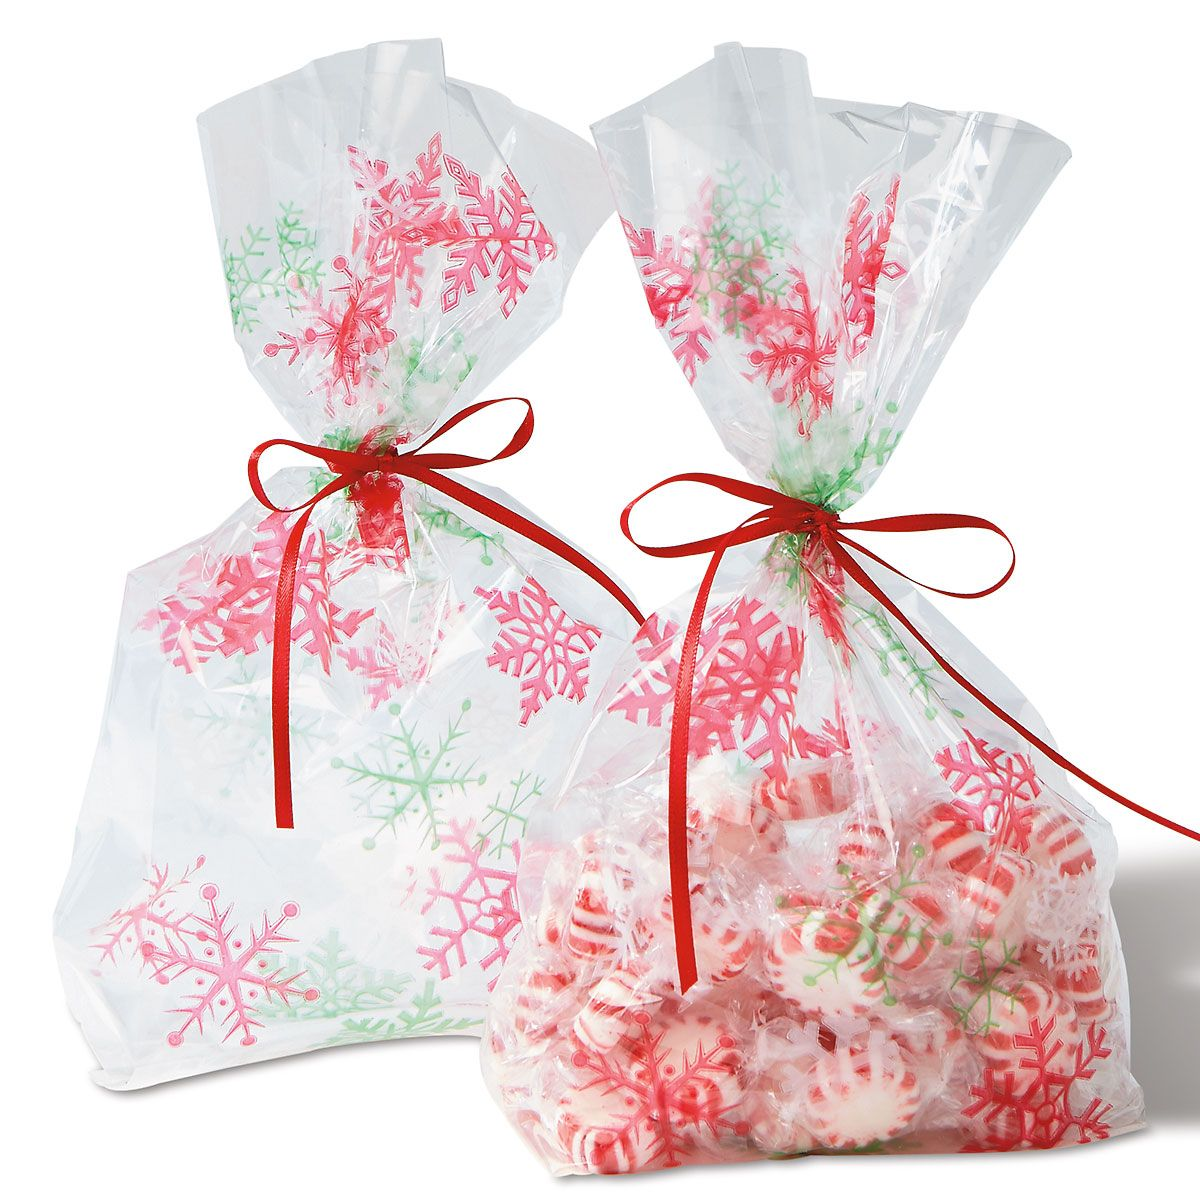 Make cello bags of small goodies as gifts to others.